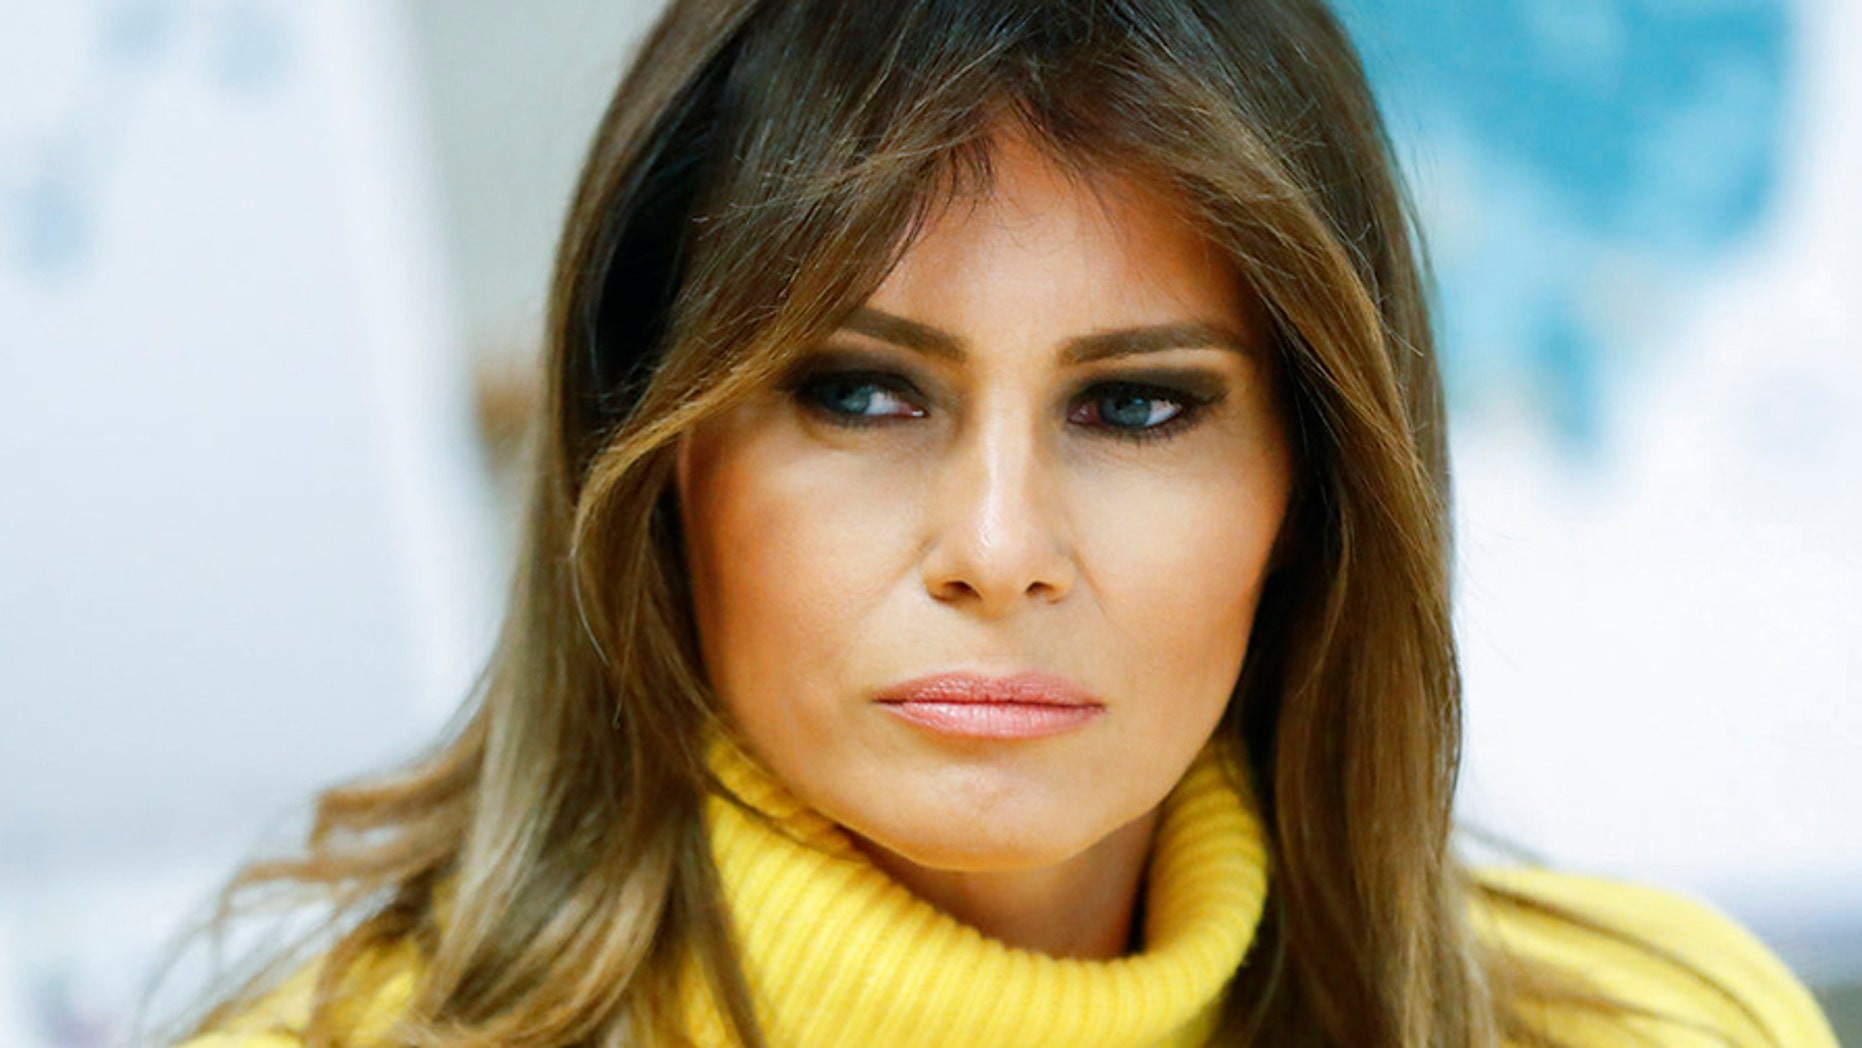 The first lady has cut ties with an adviser whose firm was paid $26 million for the inauguration.